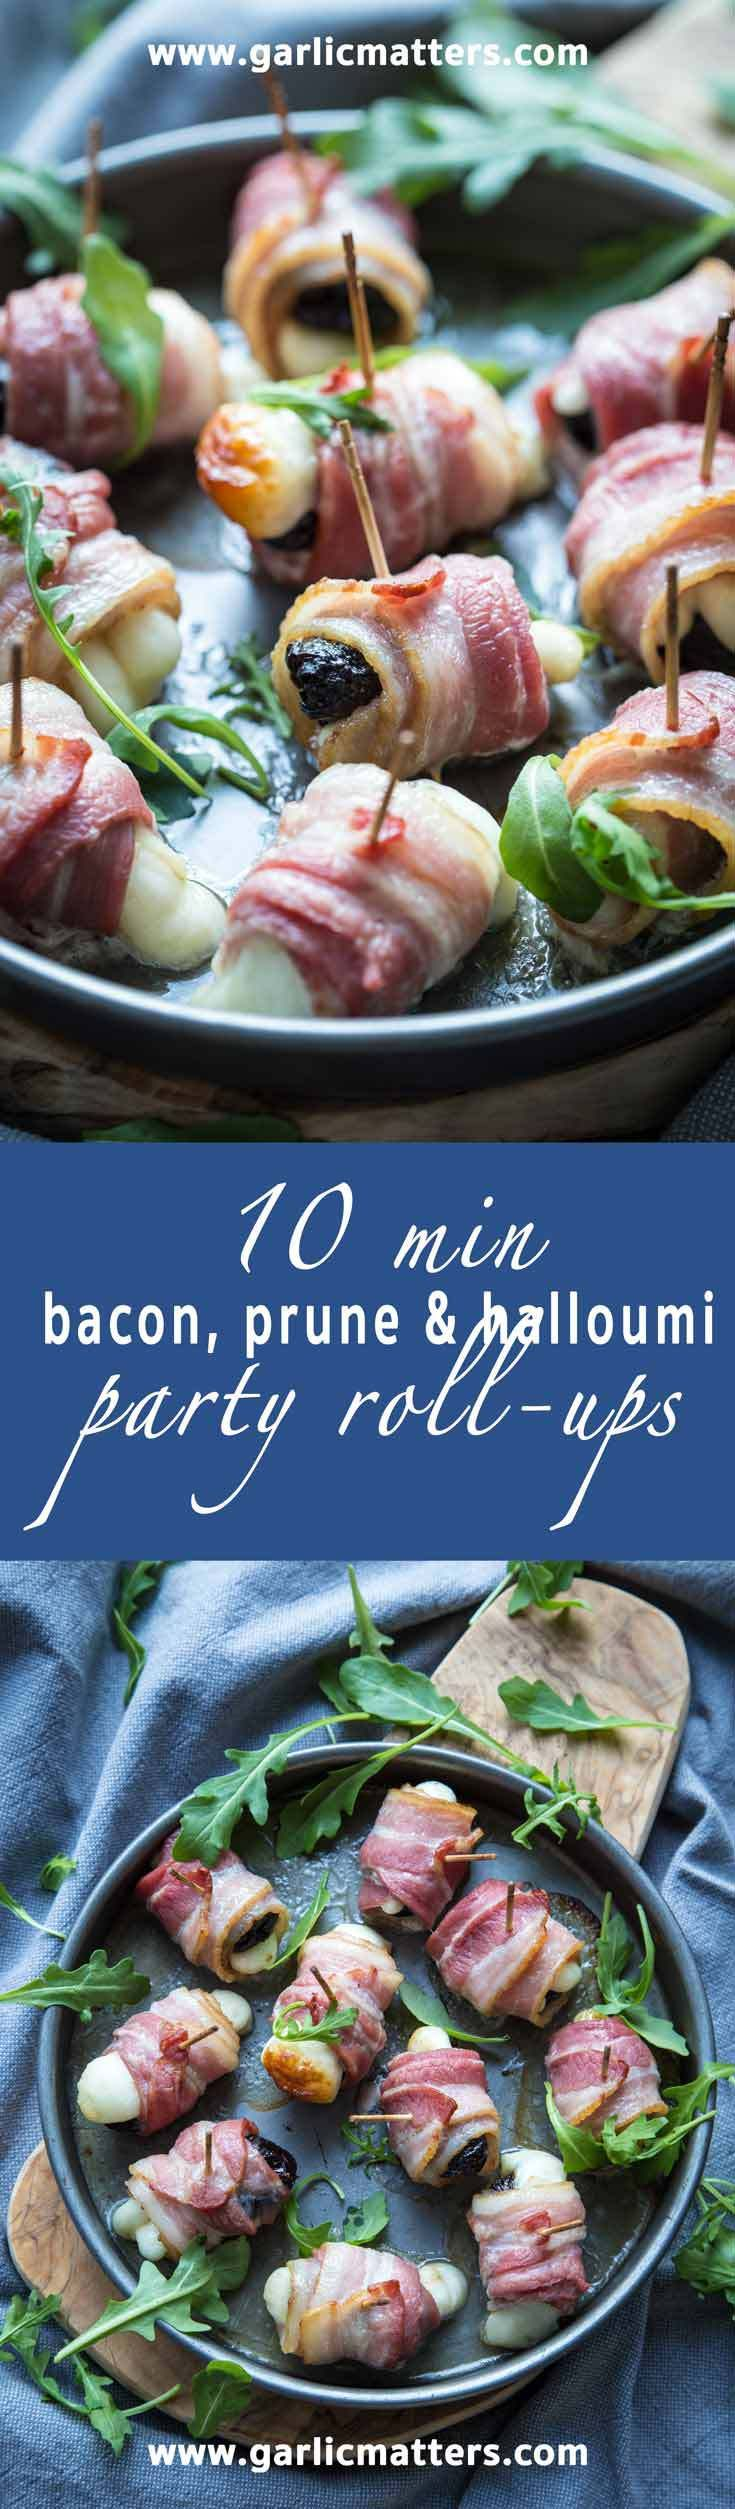 10 min bacon, prune and halloumi party roll-ups are the easiest, warm, delicious party snacks everybody wants more of!